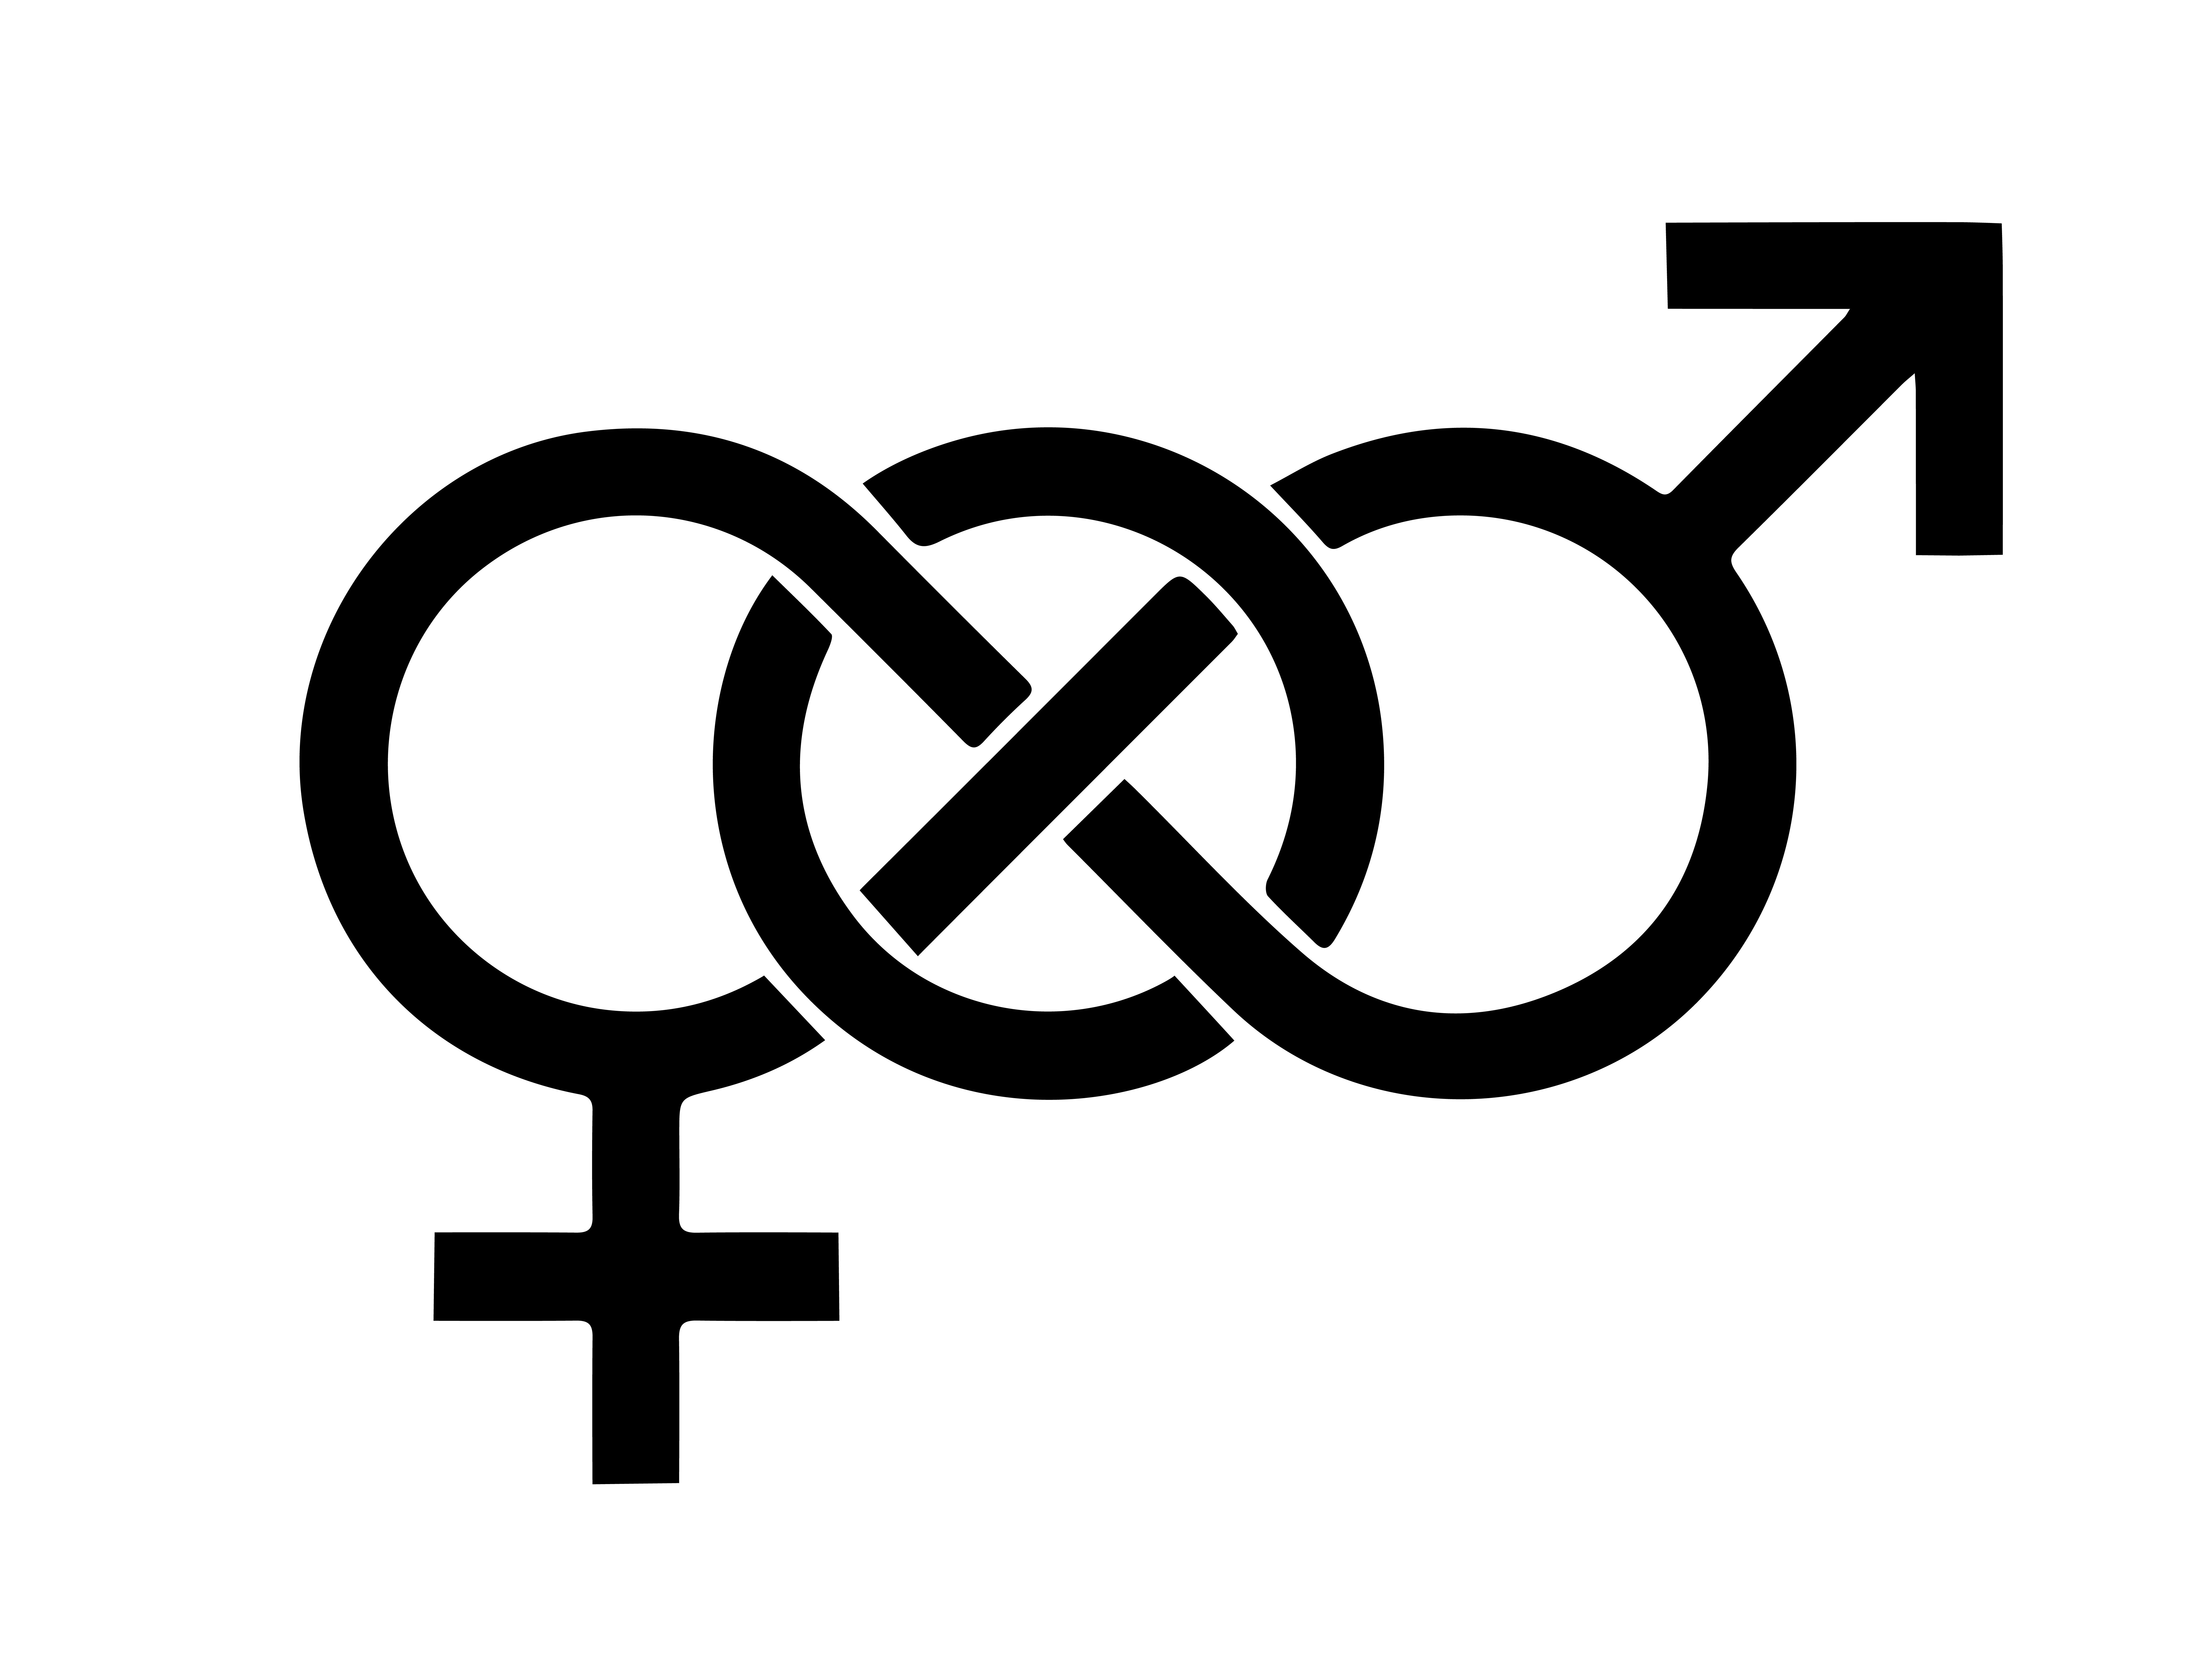 Why intersexuality will be the next civil rights frontier the last the last twelve months have seen the march of progress for gender and sexual equality gain momentum but the next battleground is already coming into focus biocorpaavc Images